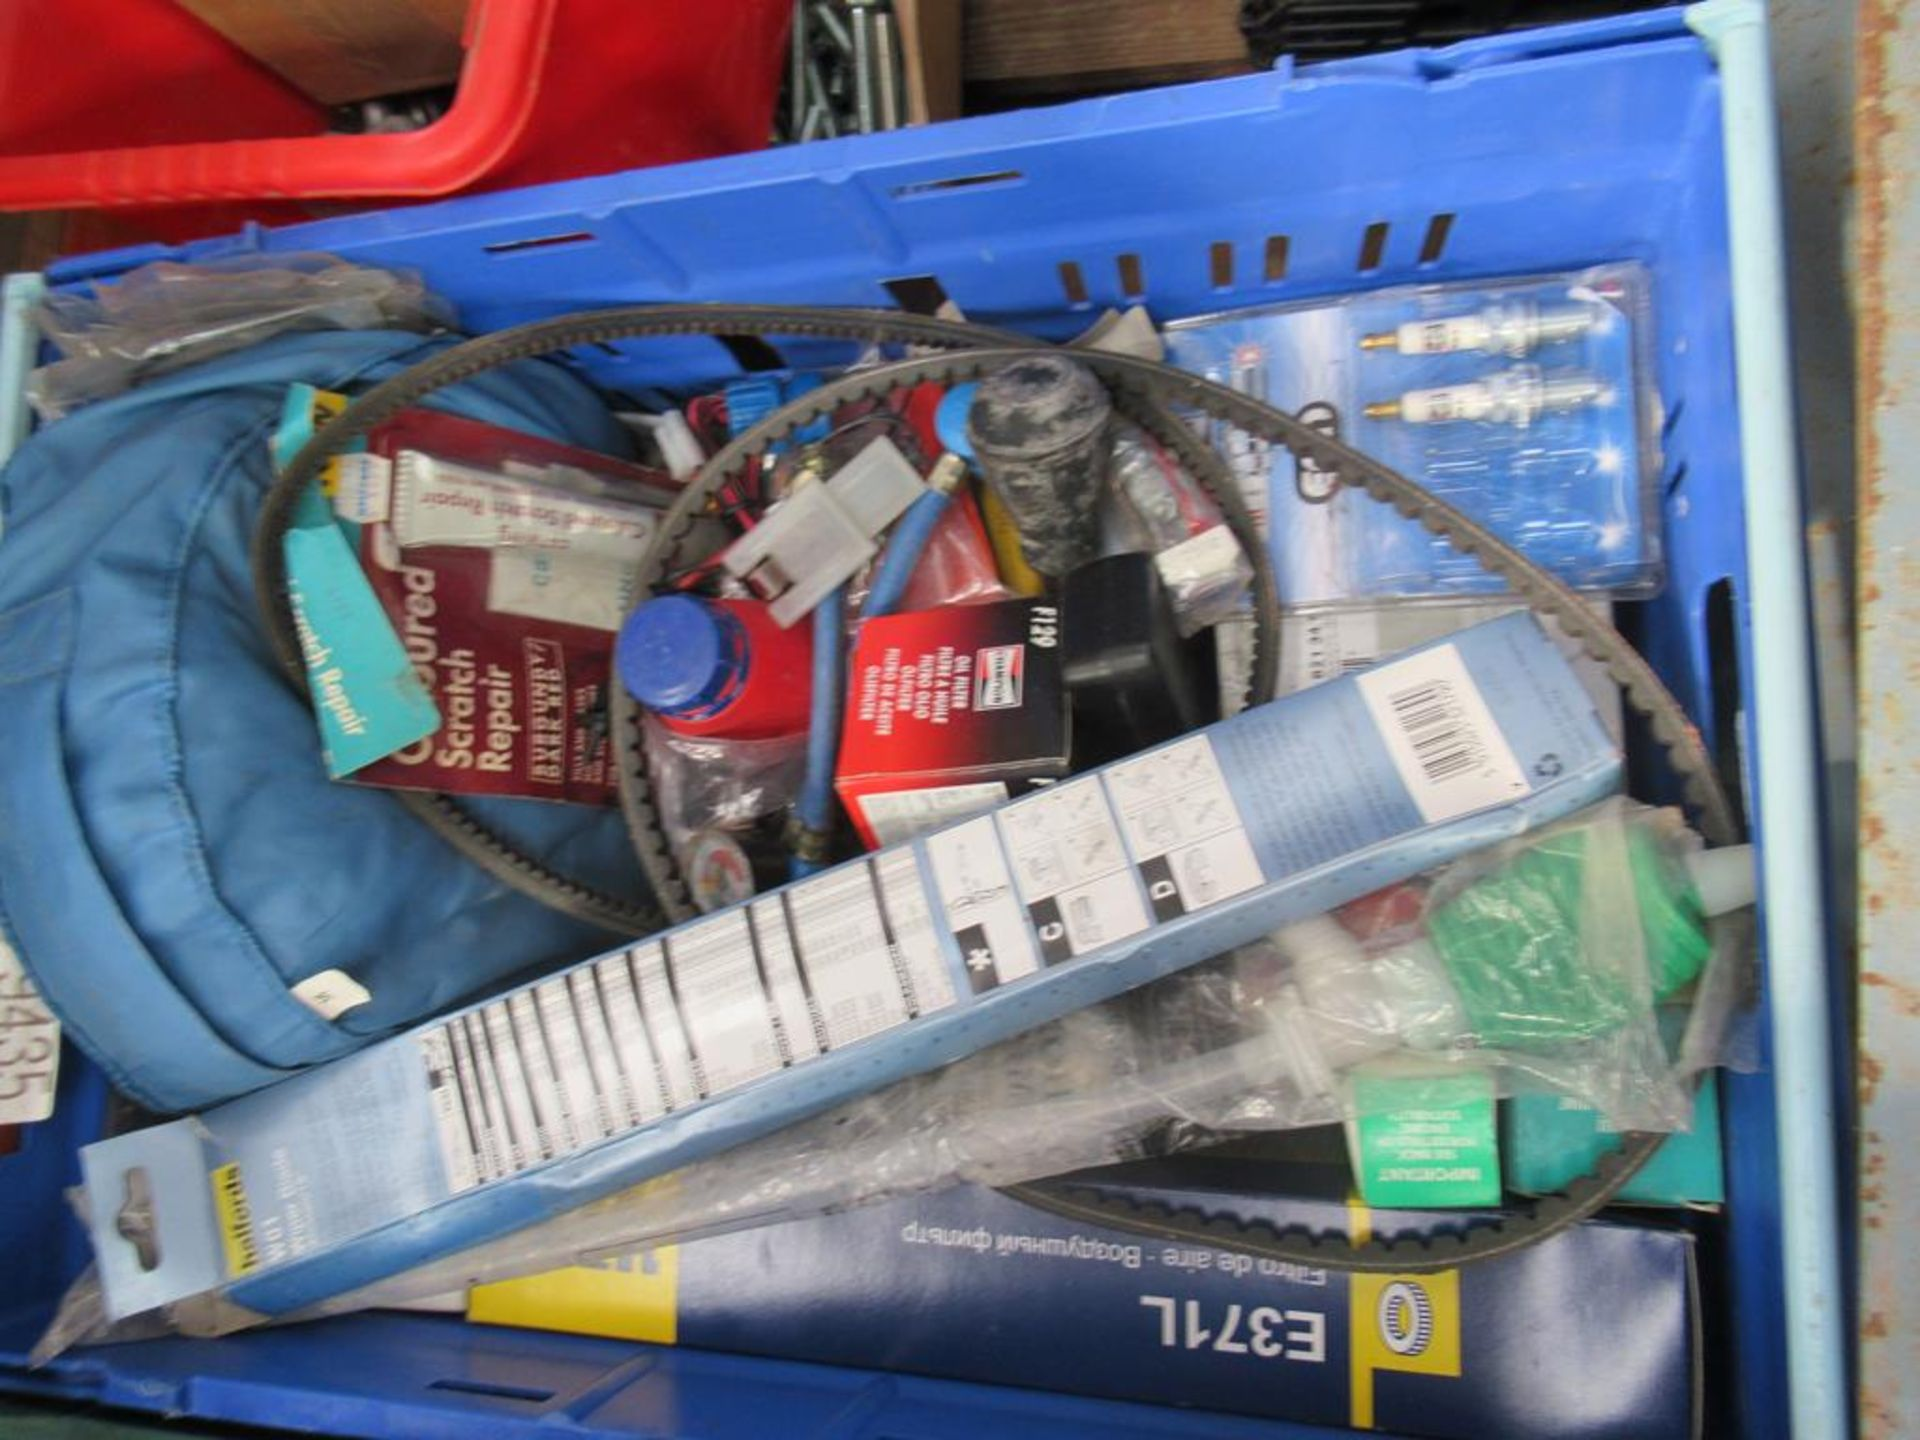 Pallet of automotive equipment/consumables - Image 9 of 9